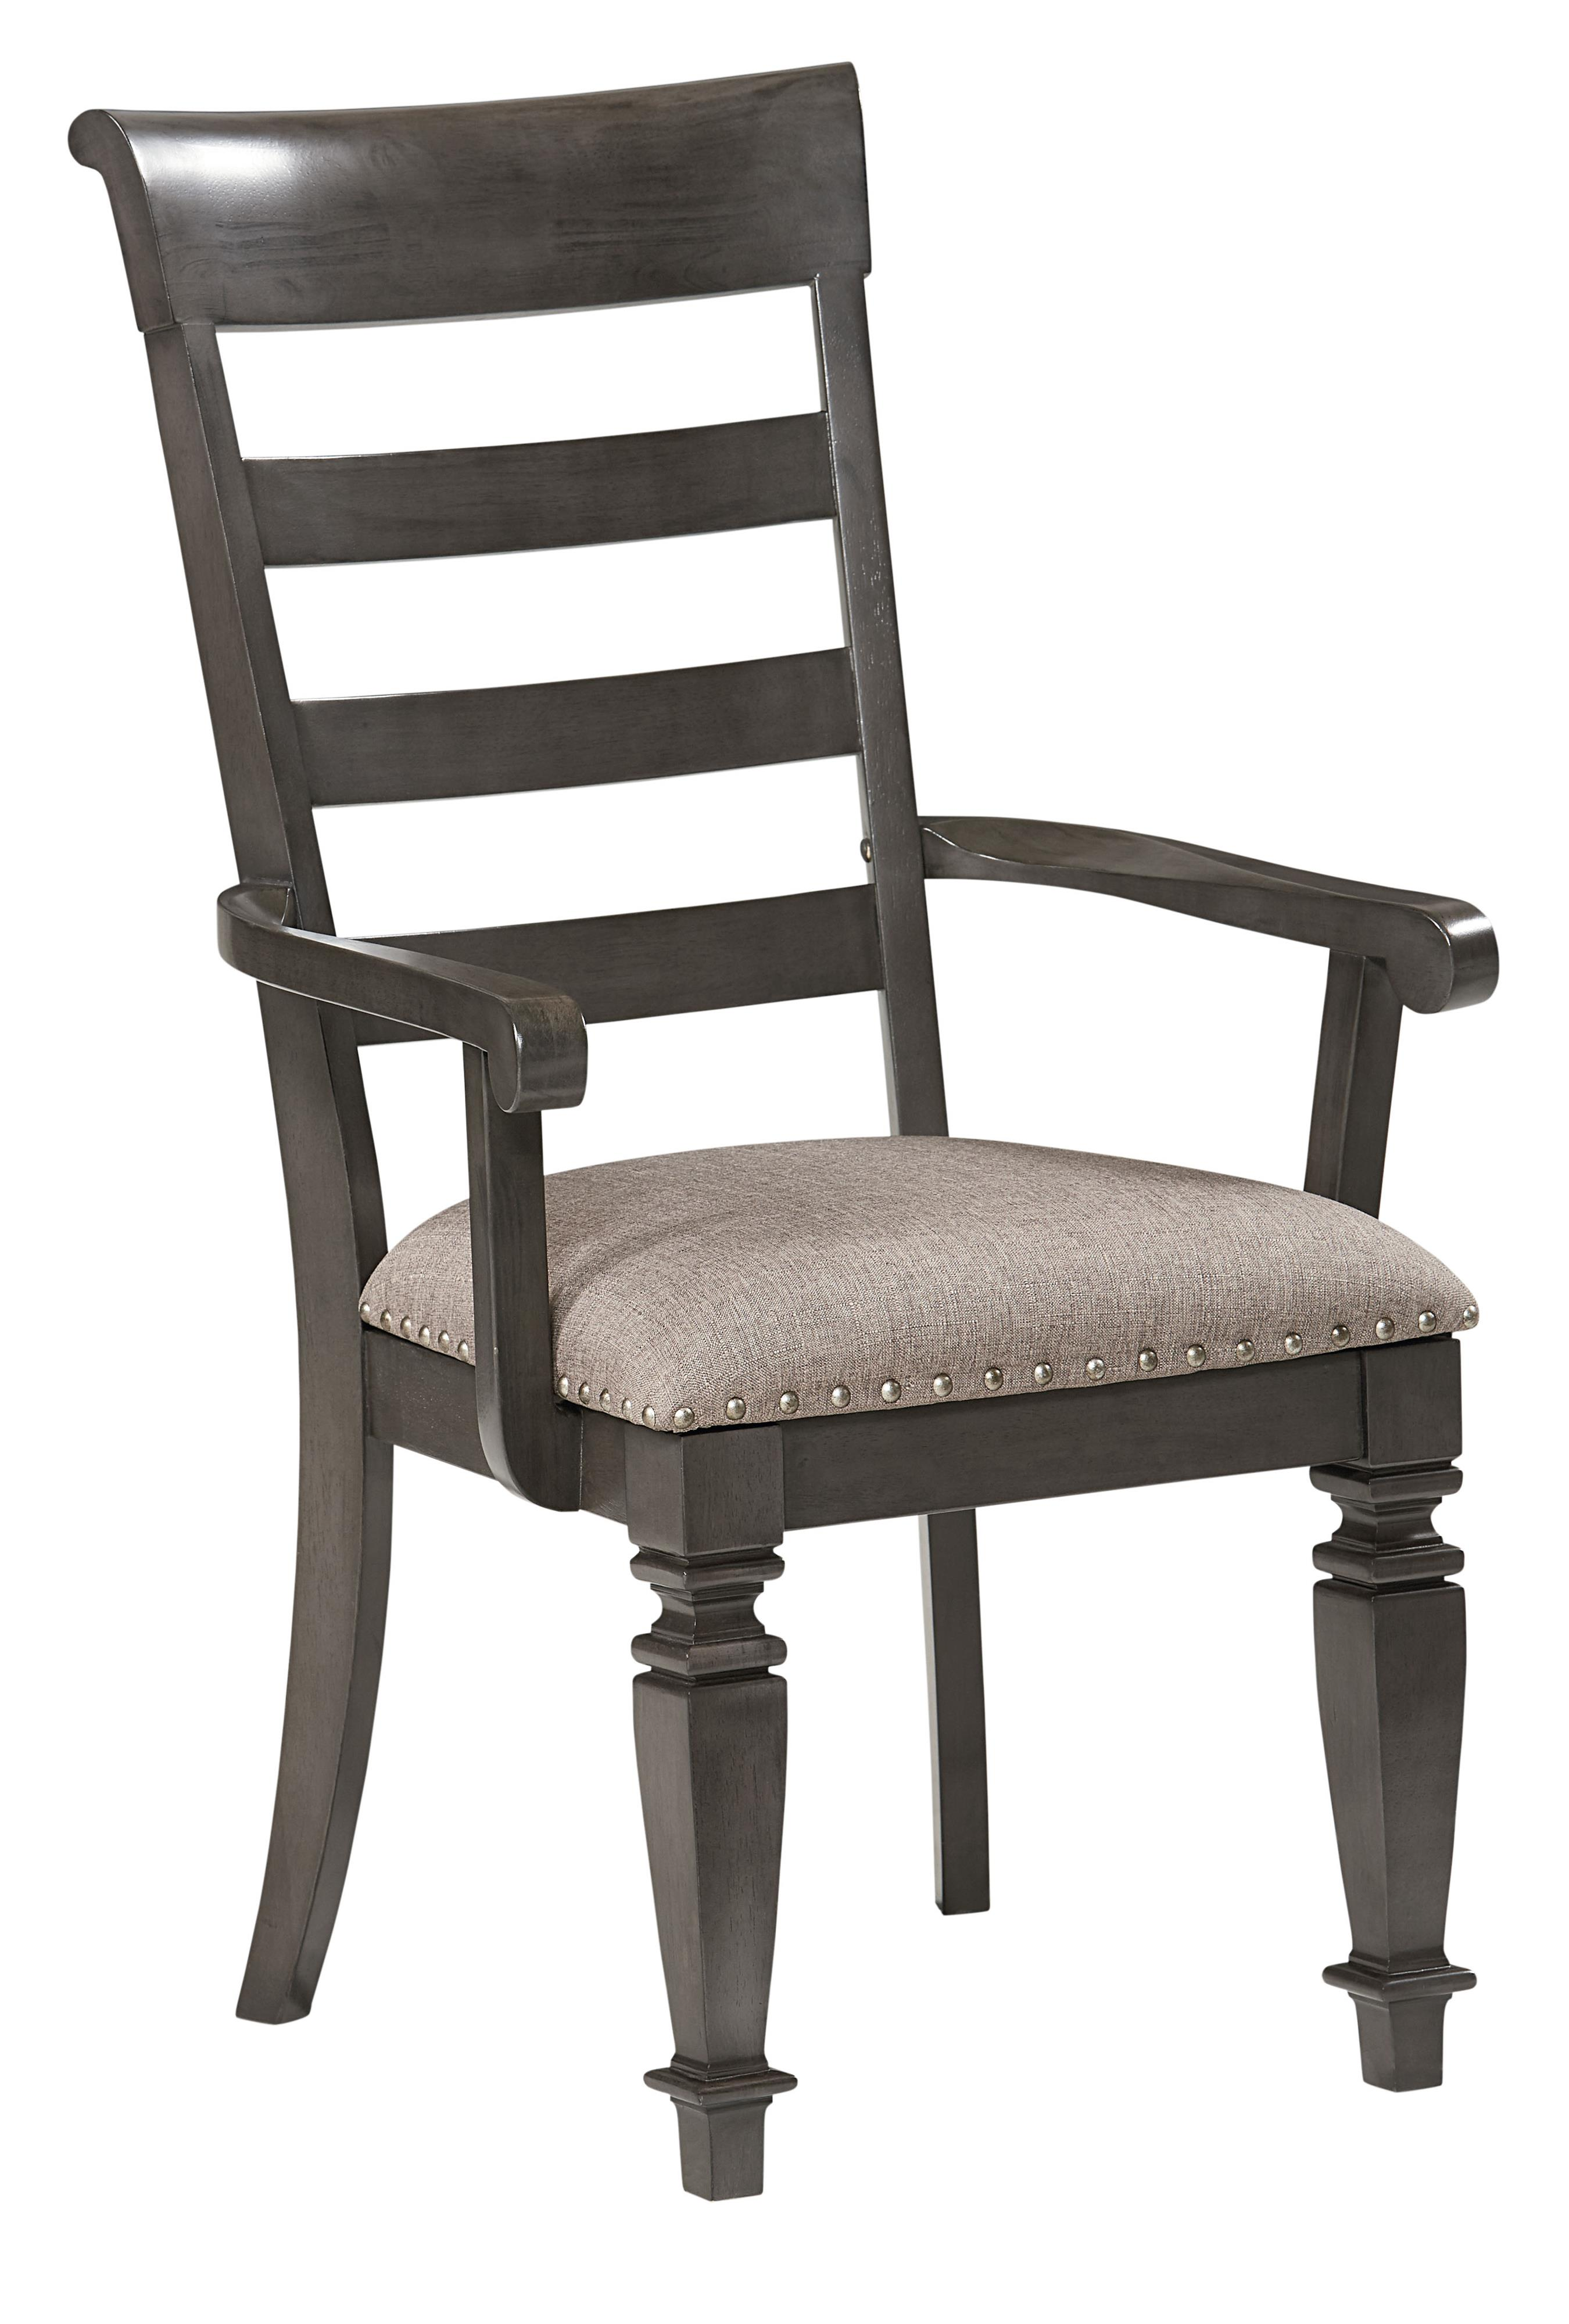 Standard Furniture Garrison Dining Room Arm Chair - Item Number: 14905